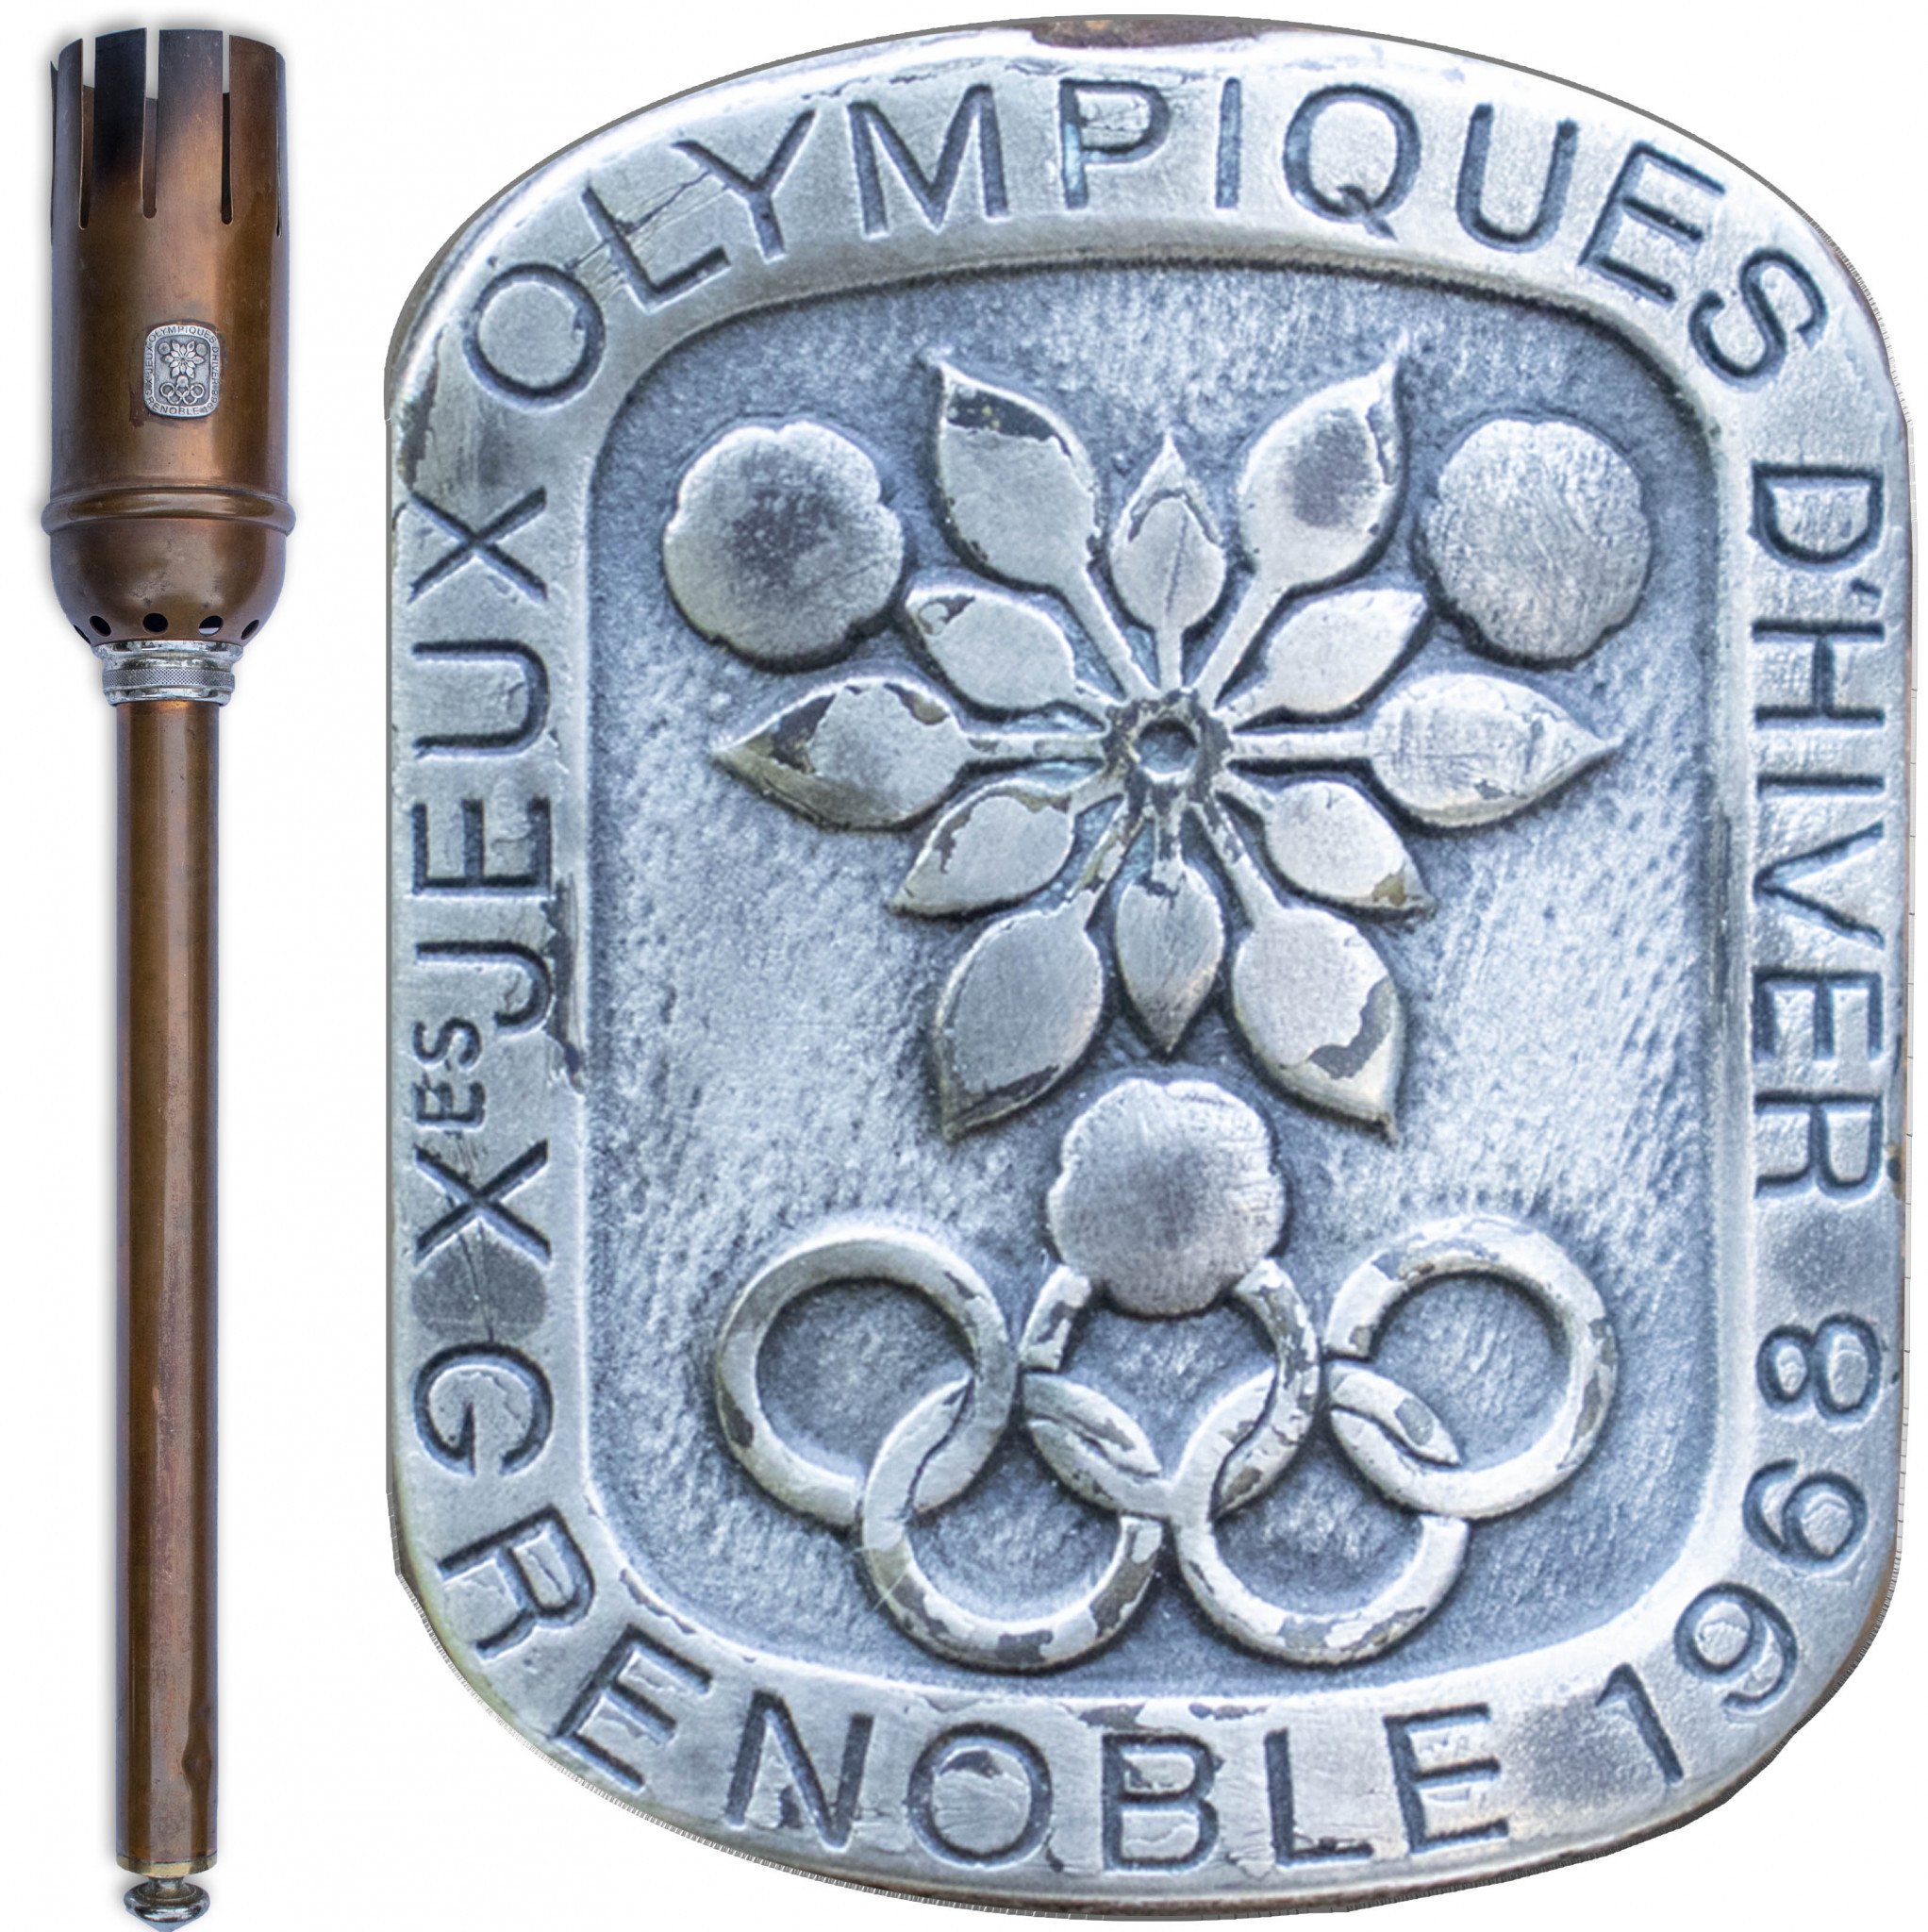 Rare Grenoble 1968 Olympic Torch to be sold at auction